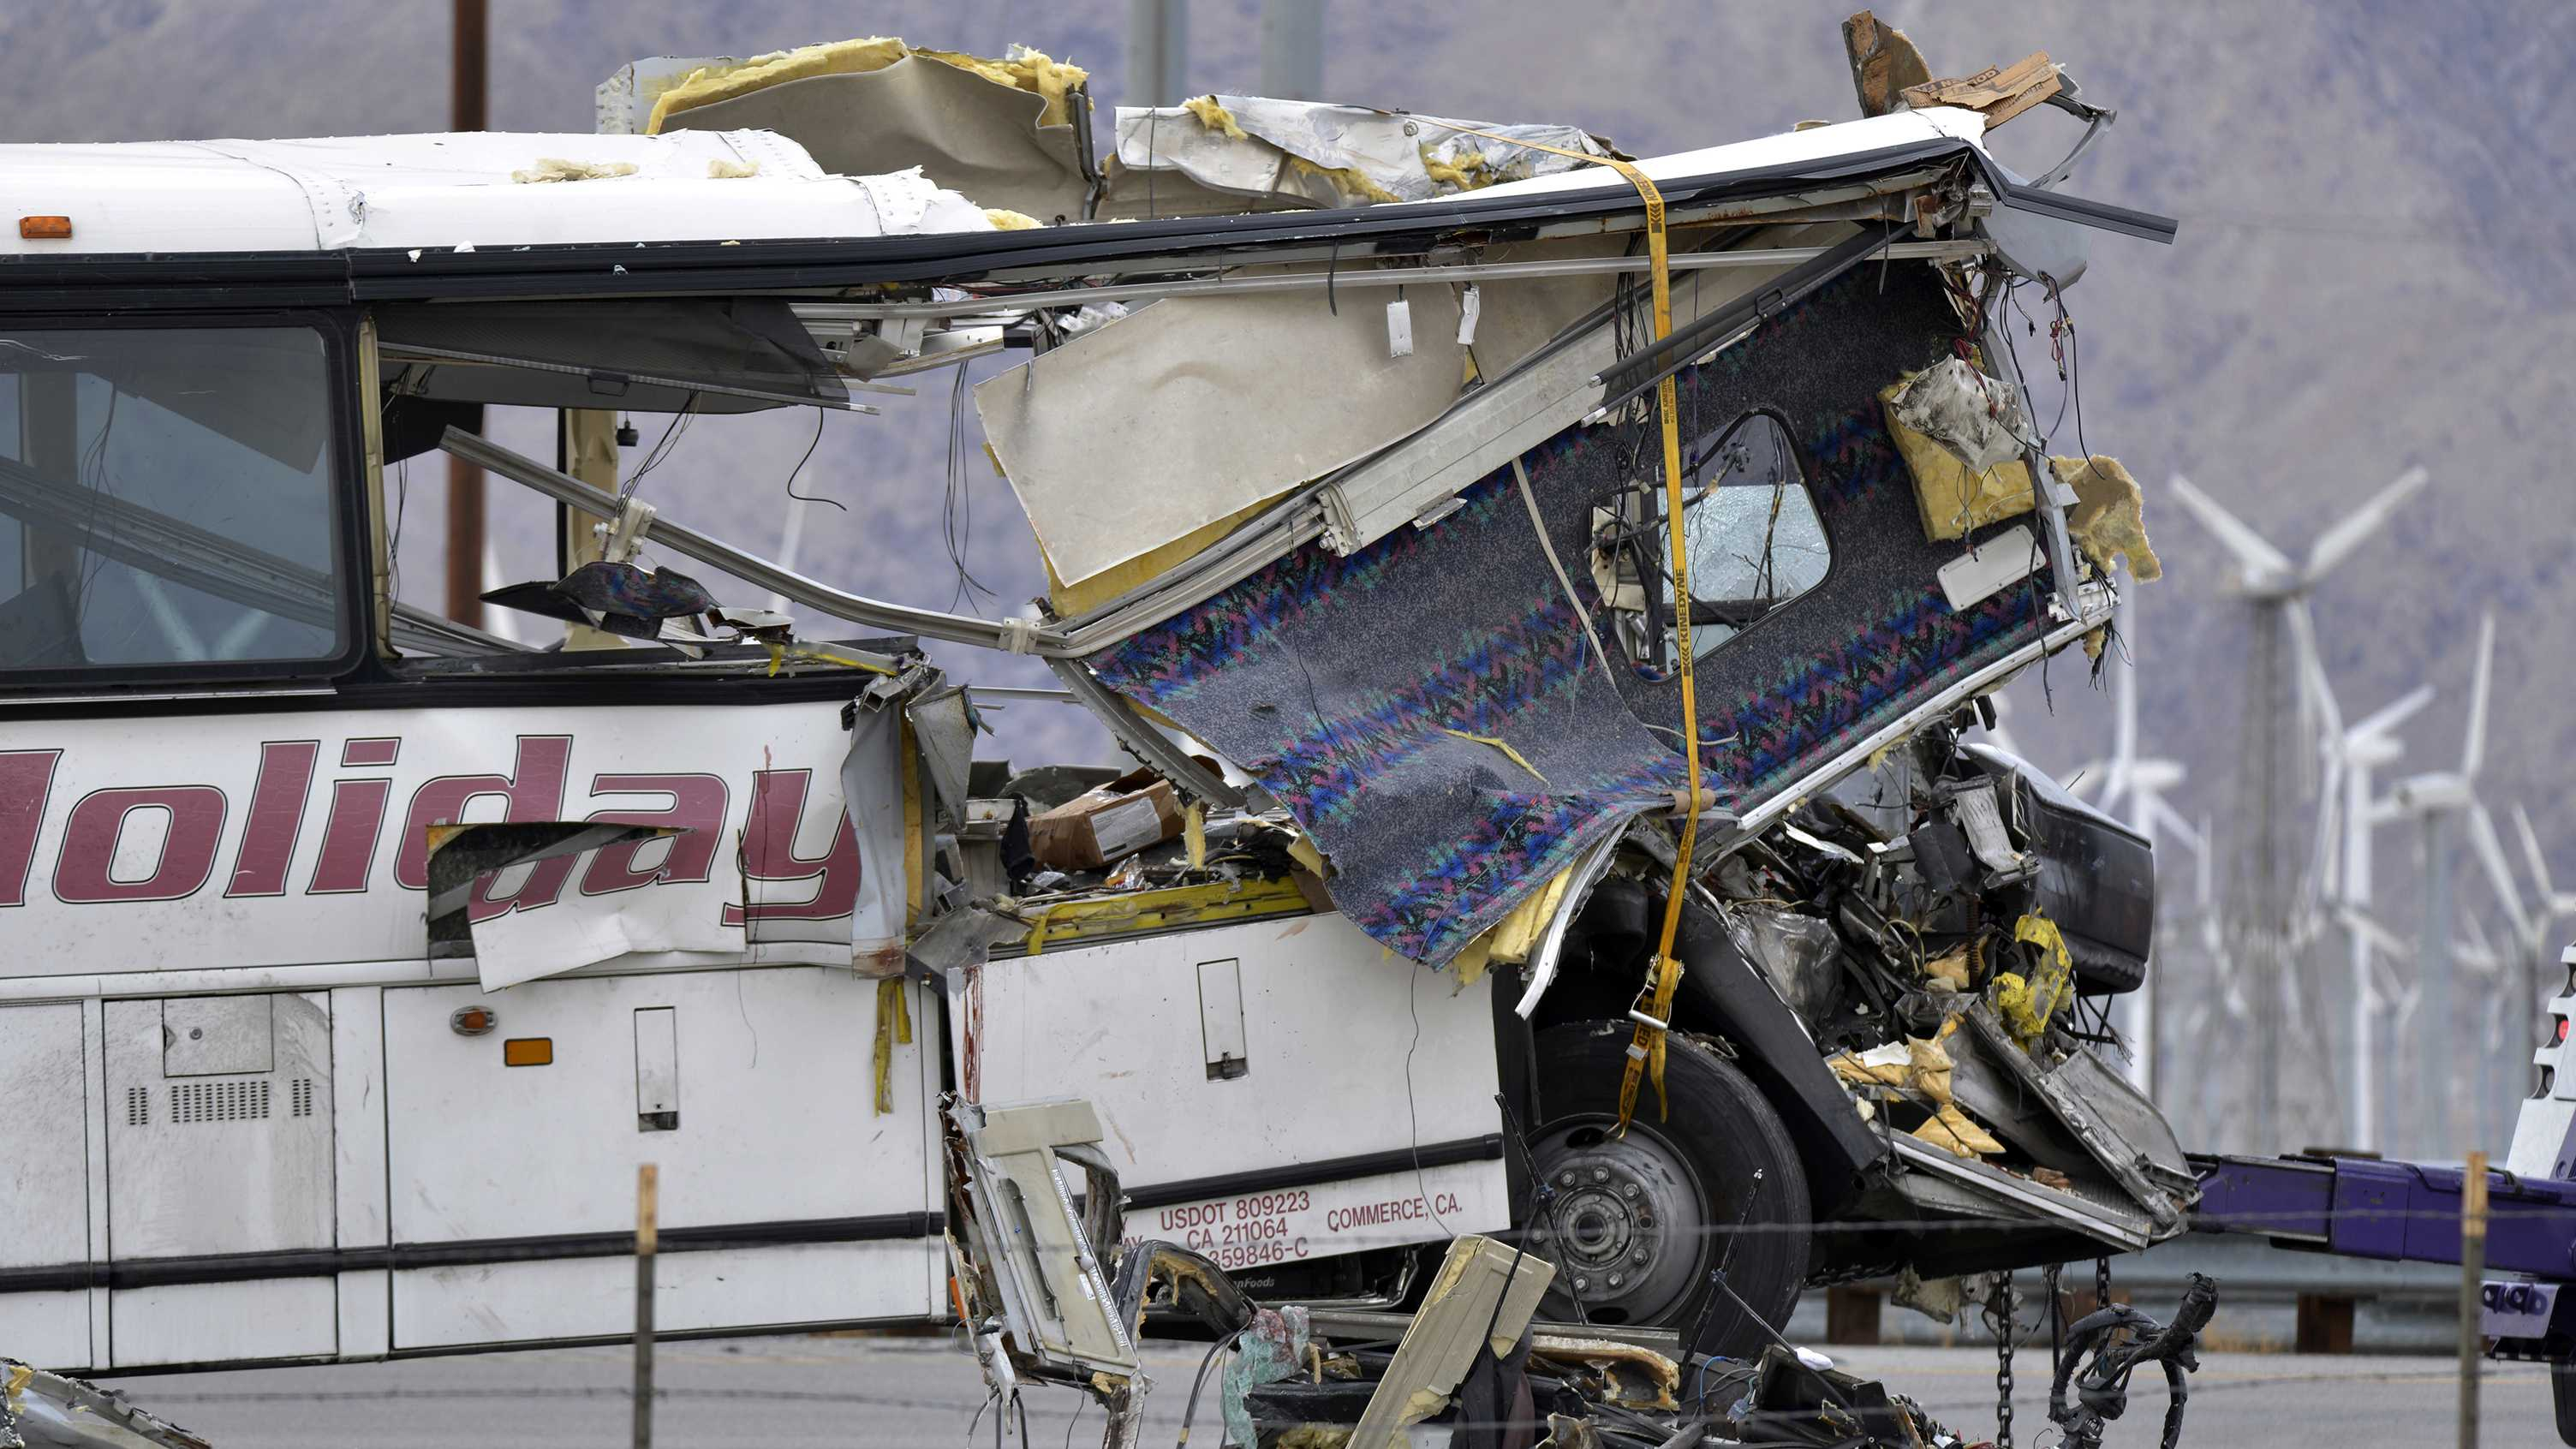 This Oct. 23, 2016 file photo shows the wreckage of a tour bus that collided with a big rig on Interstate 10 in Desert Hot Springs, Calif., near Palm Springs, Calif. The crash killed 13 people and injured over two dozen. Bus tours have been a fixture across the American landscape for years, shuttling gamblers from cities to rural places where casinos are located, particularly in California where tribal operations are often hours away.